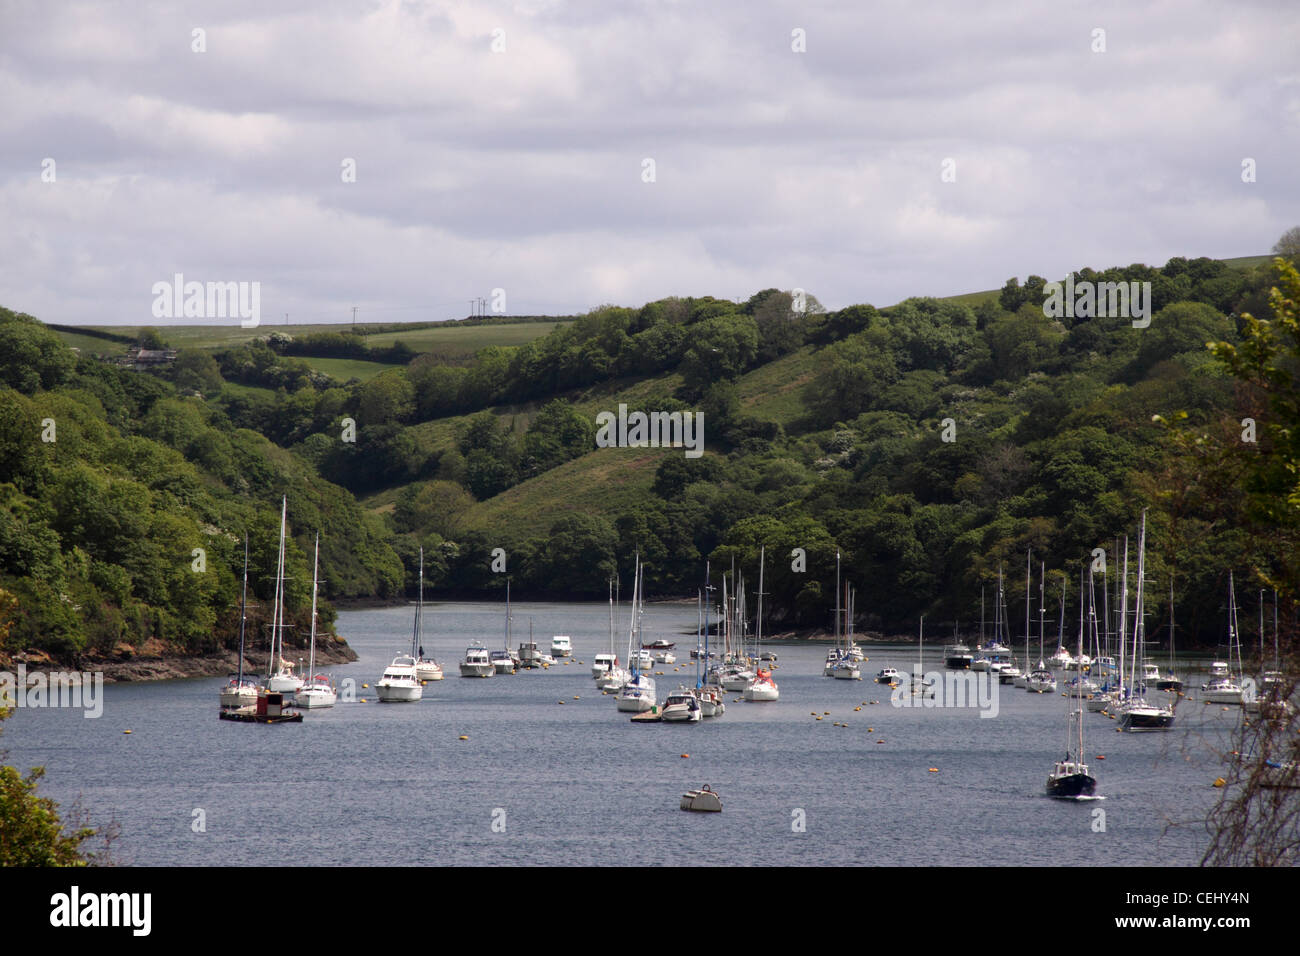 Fowey. View looking upstream of the River Fowey, with lots of boats anchored near Fowey and Polruan - Stock Image